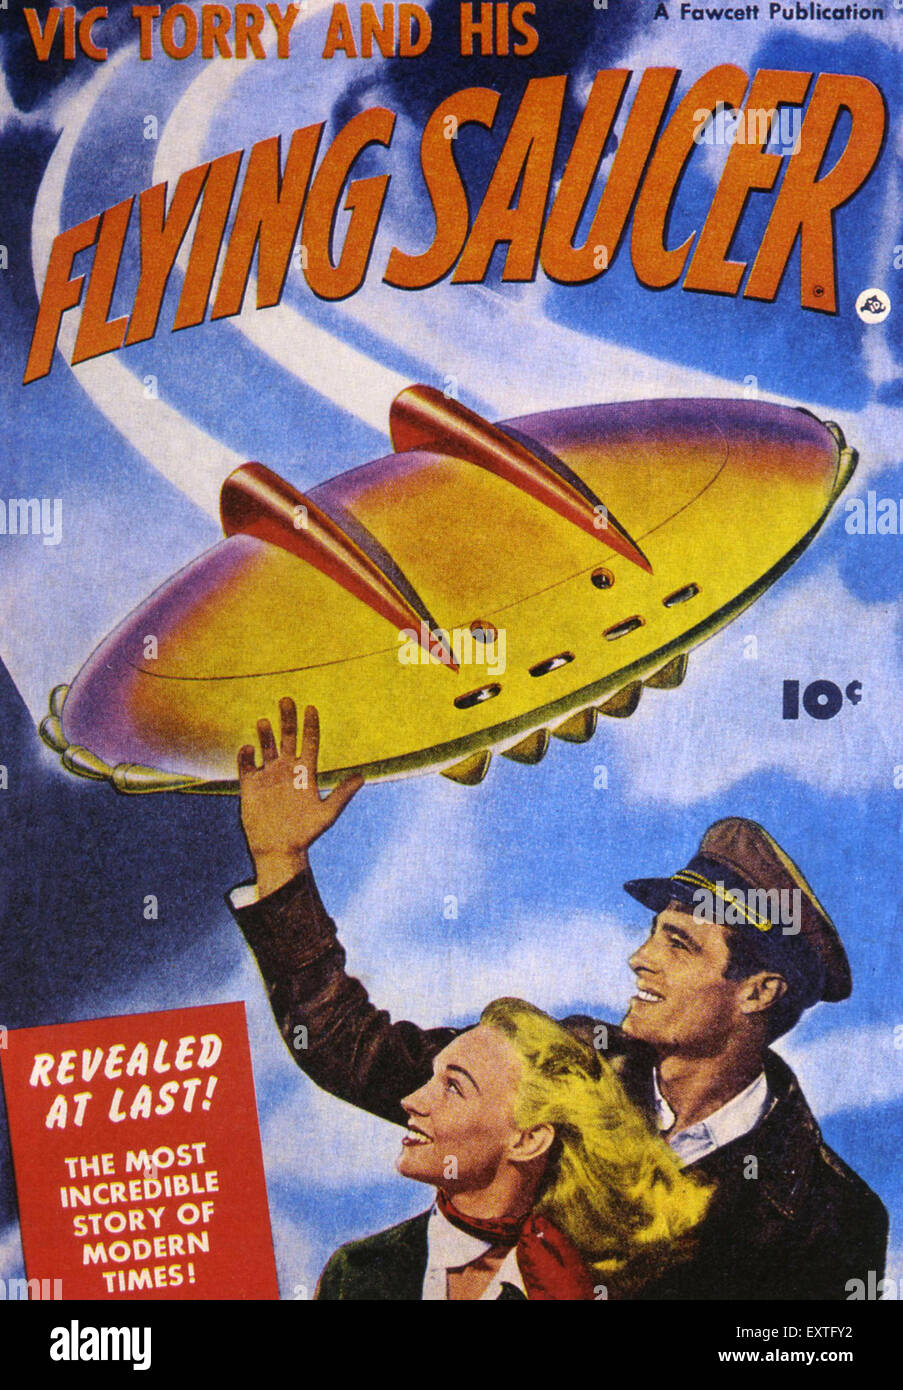 UFO Flying saucers Old Magazine cover Poster reproduction